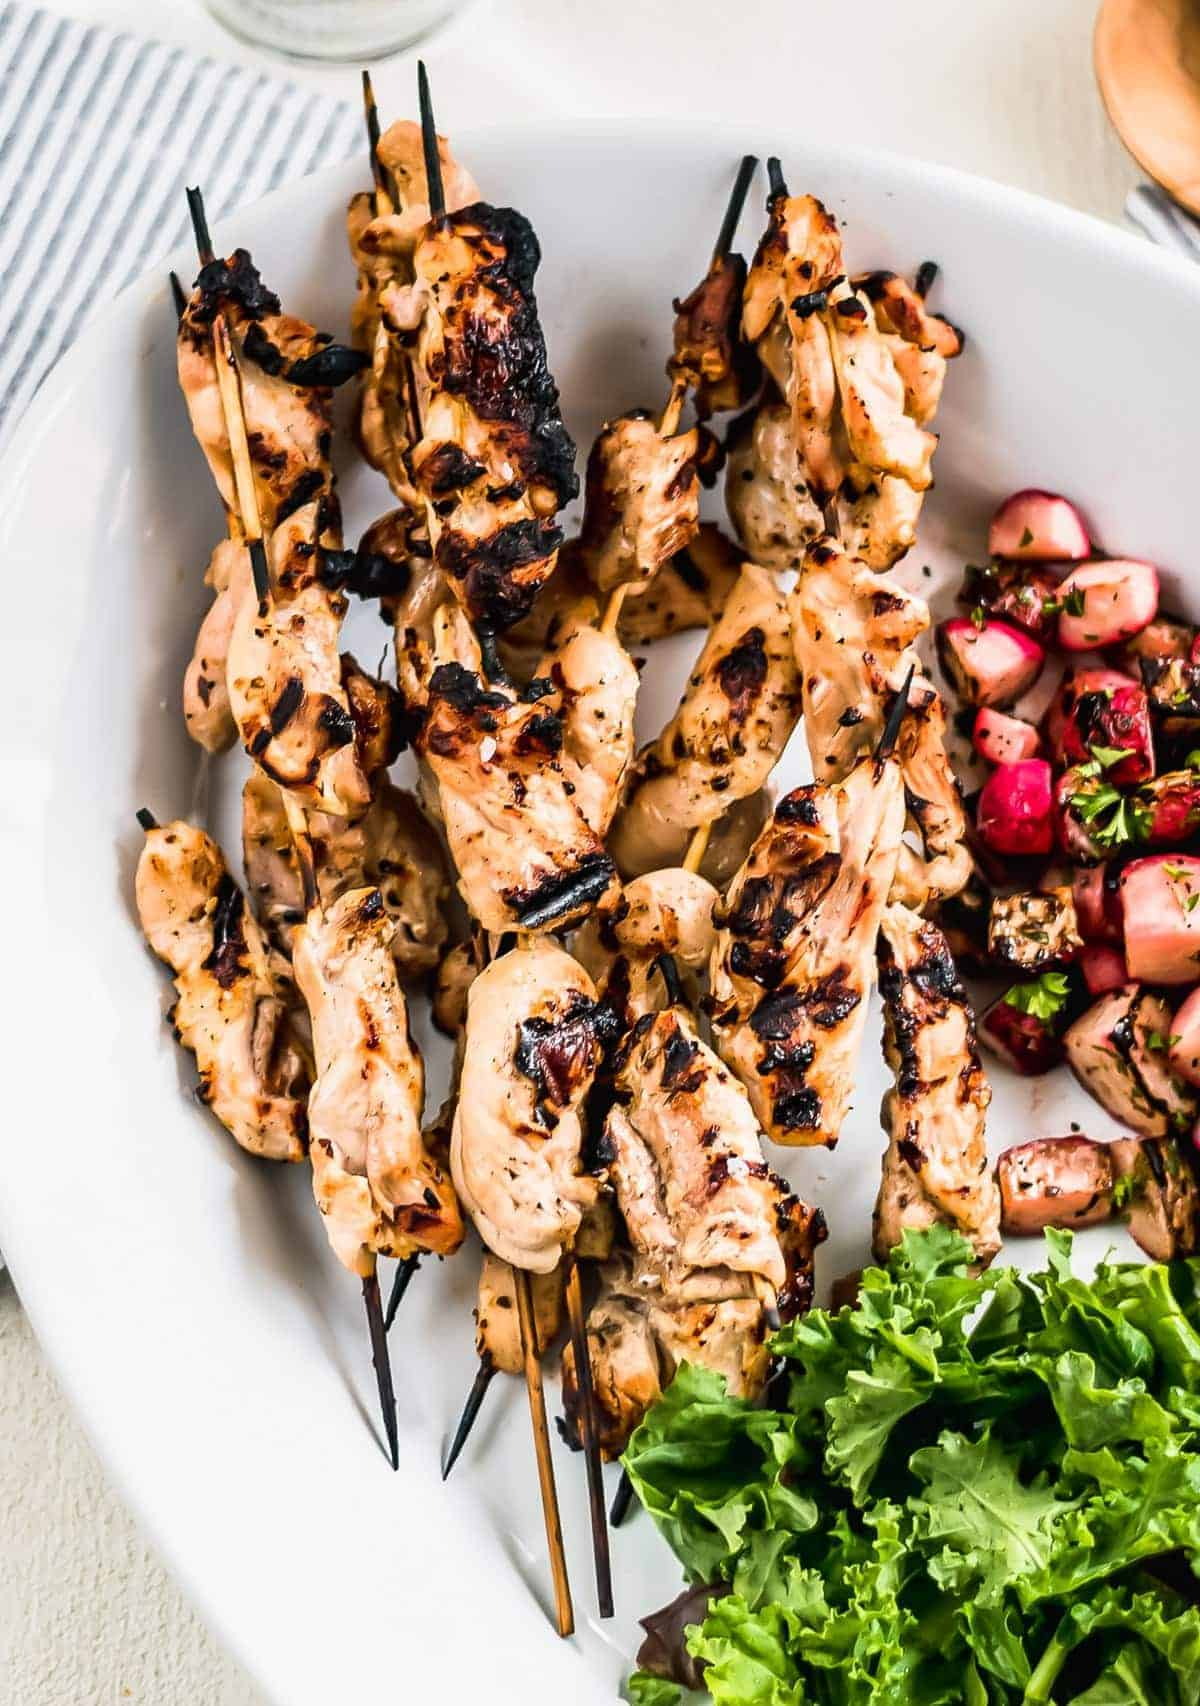 Grilled chicken kebabs on a large white serving plate